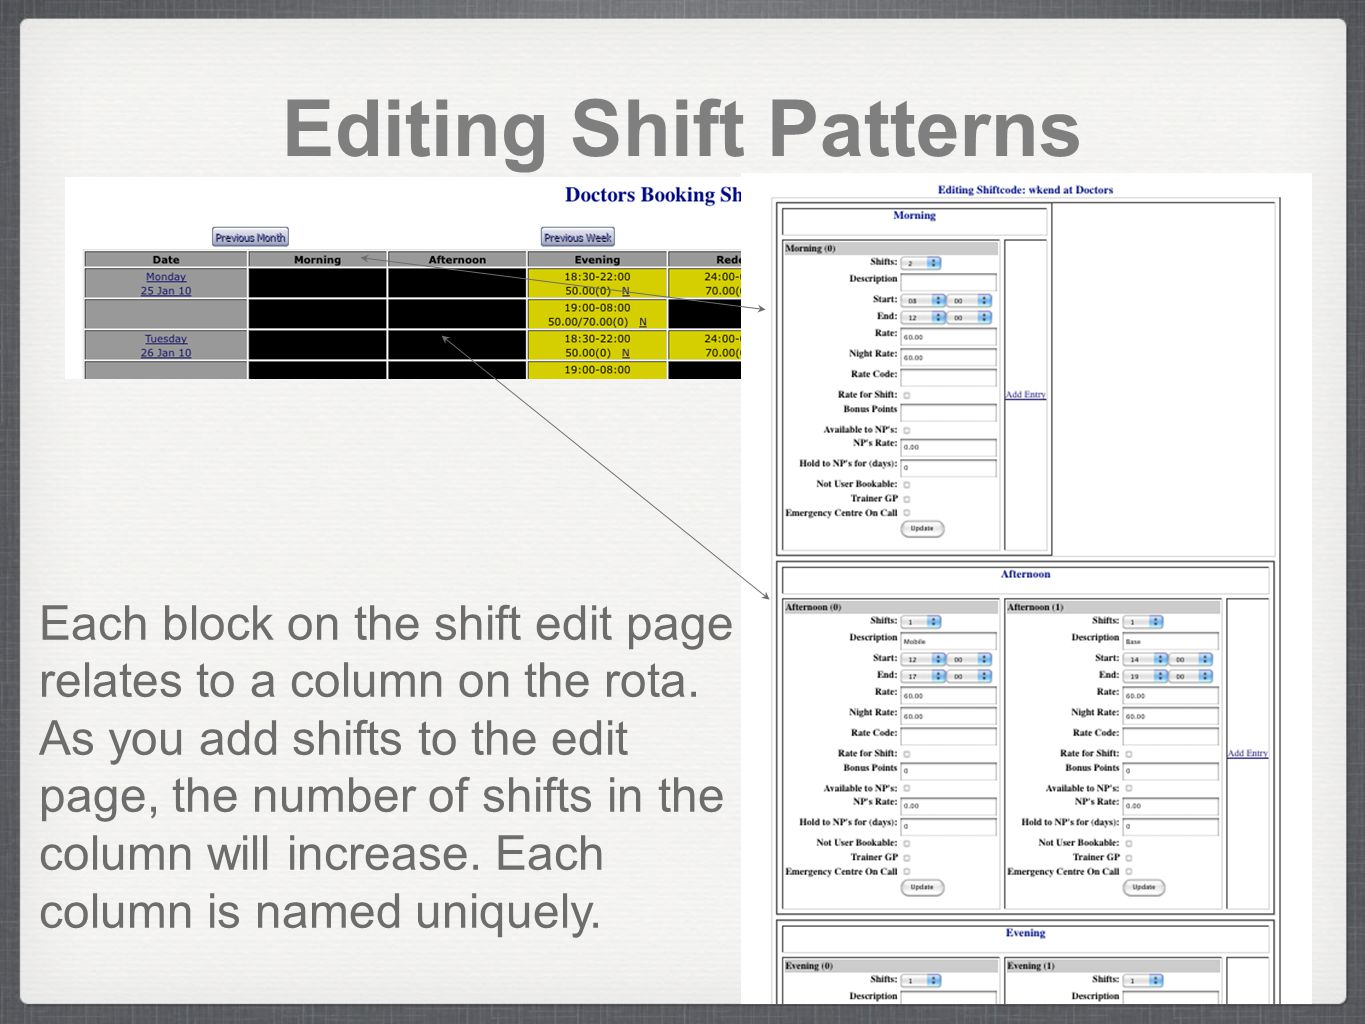 Editing Shift Patterns Each block on the shift edit page relates to a column on the rota. As you add shifts to the edit page, the number of shifts in